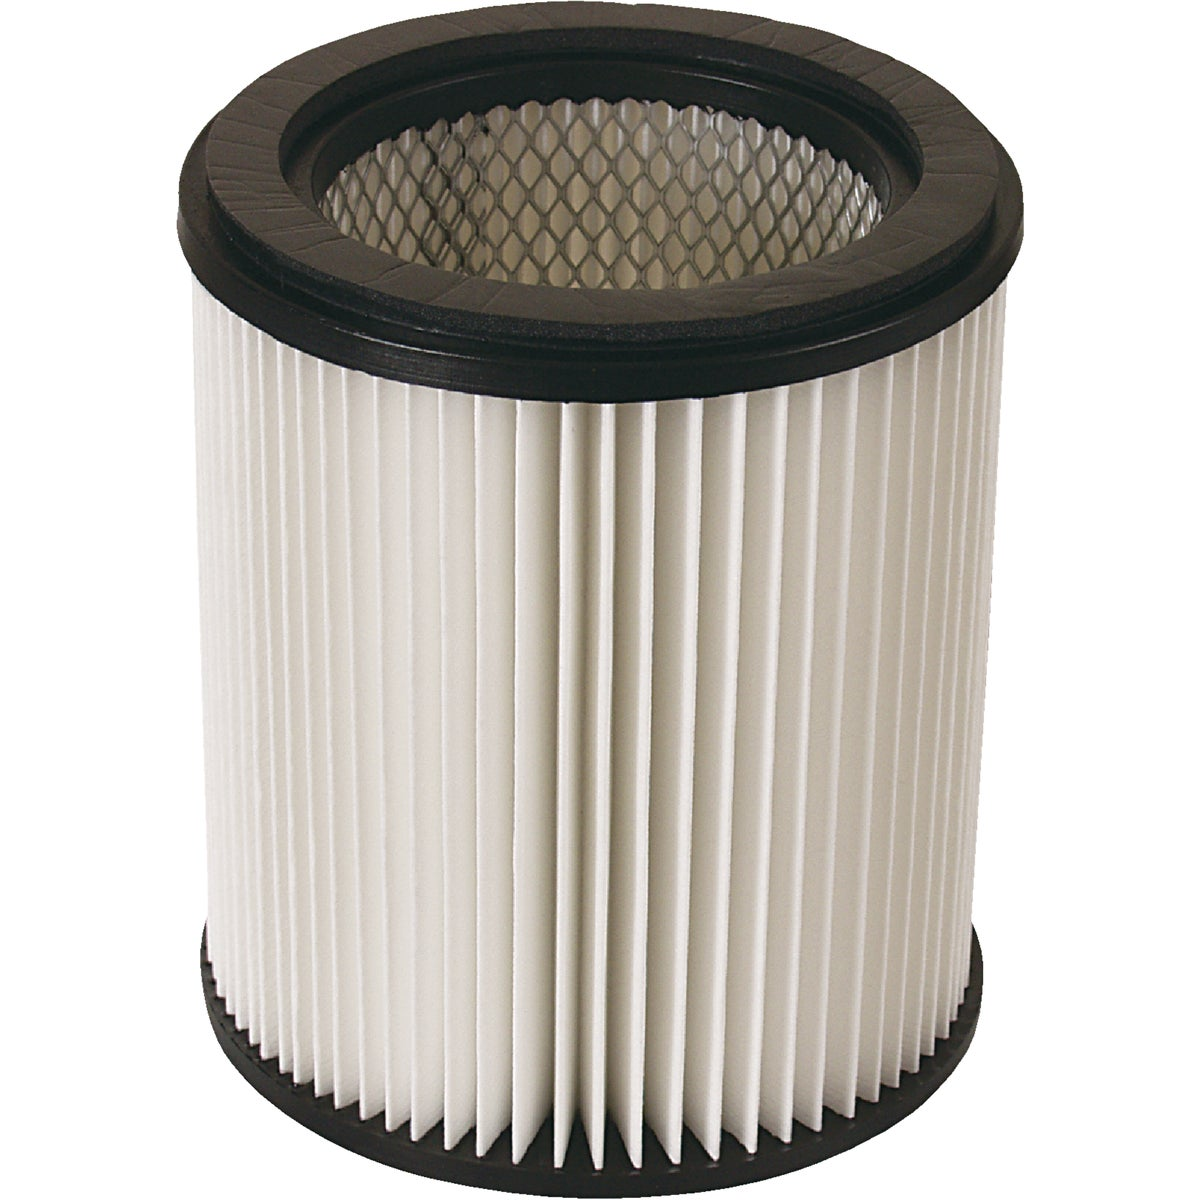 Mi-T-M Cartridge Filter, 19-0230